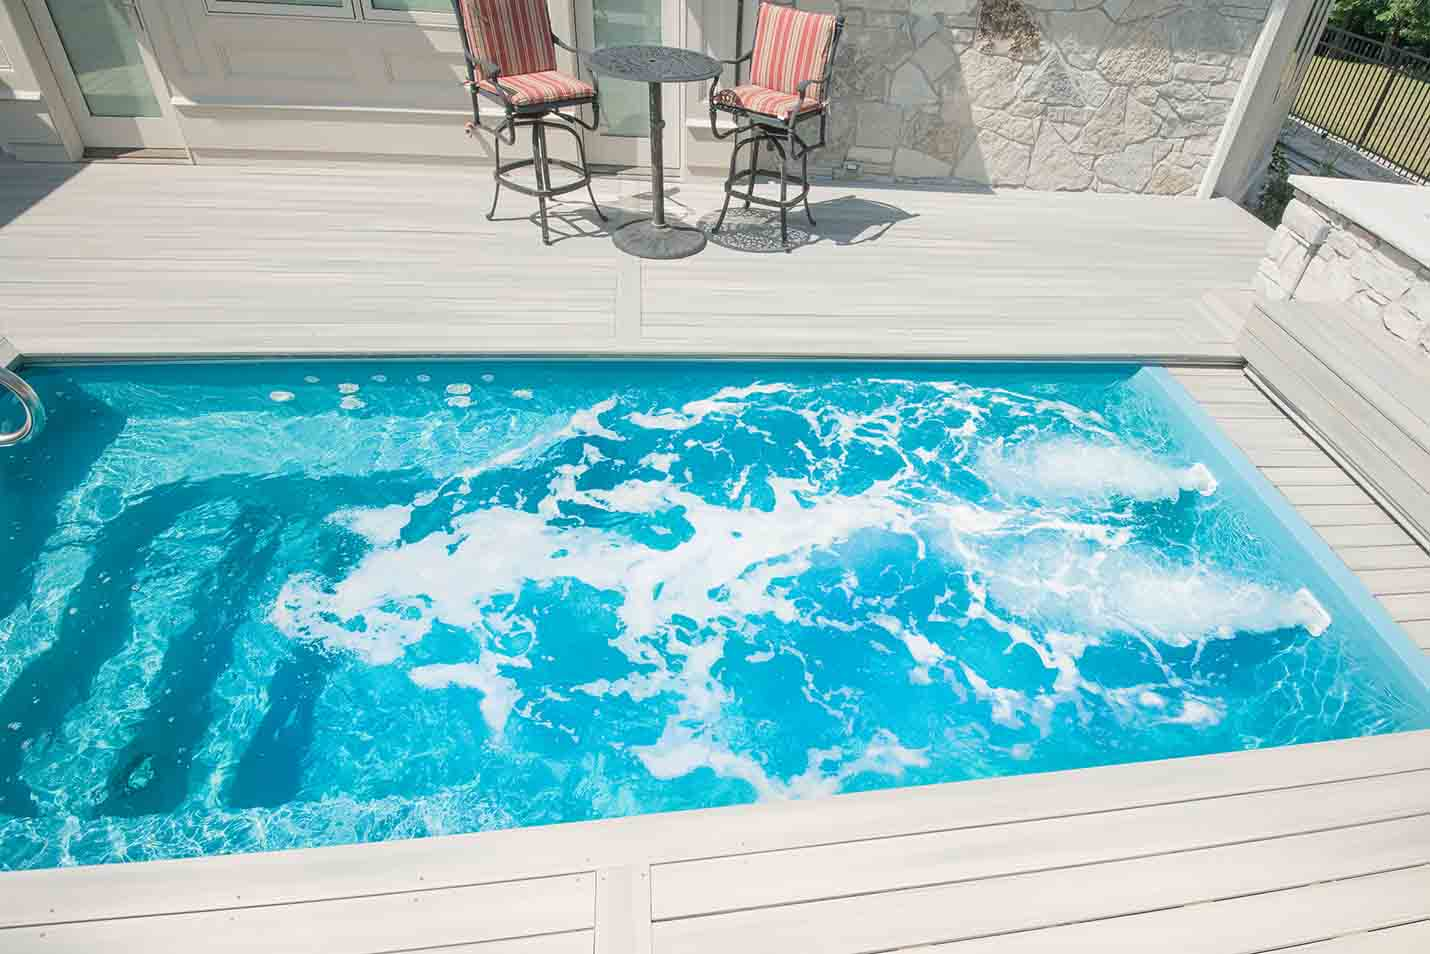 Pool Jacuzzi Jets Not Working How To Turn Your Home Into The Coolest Party Venue